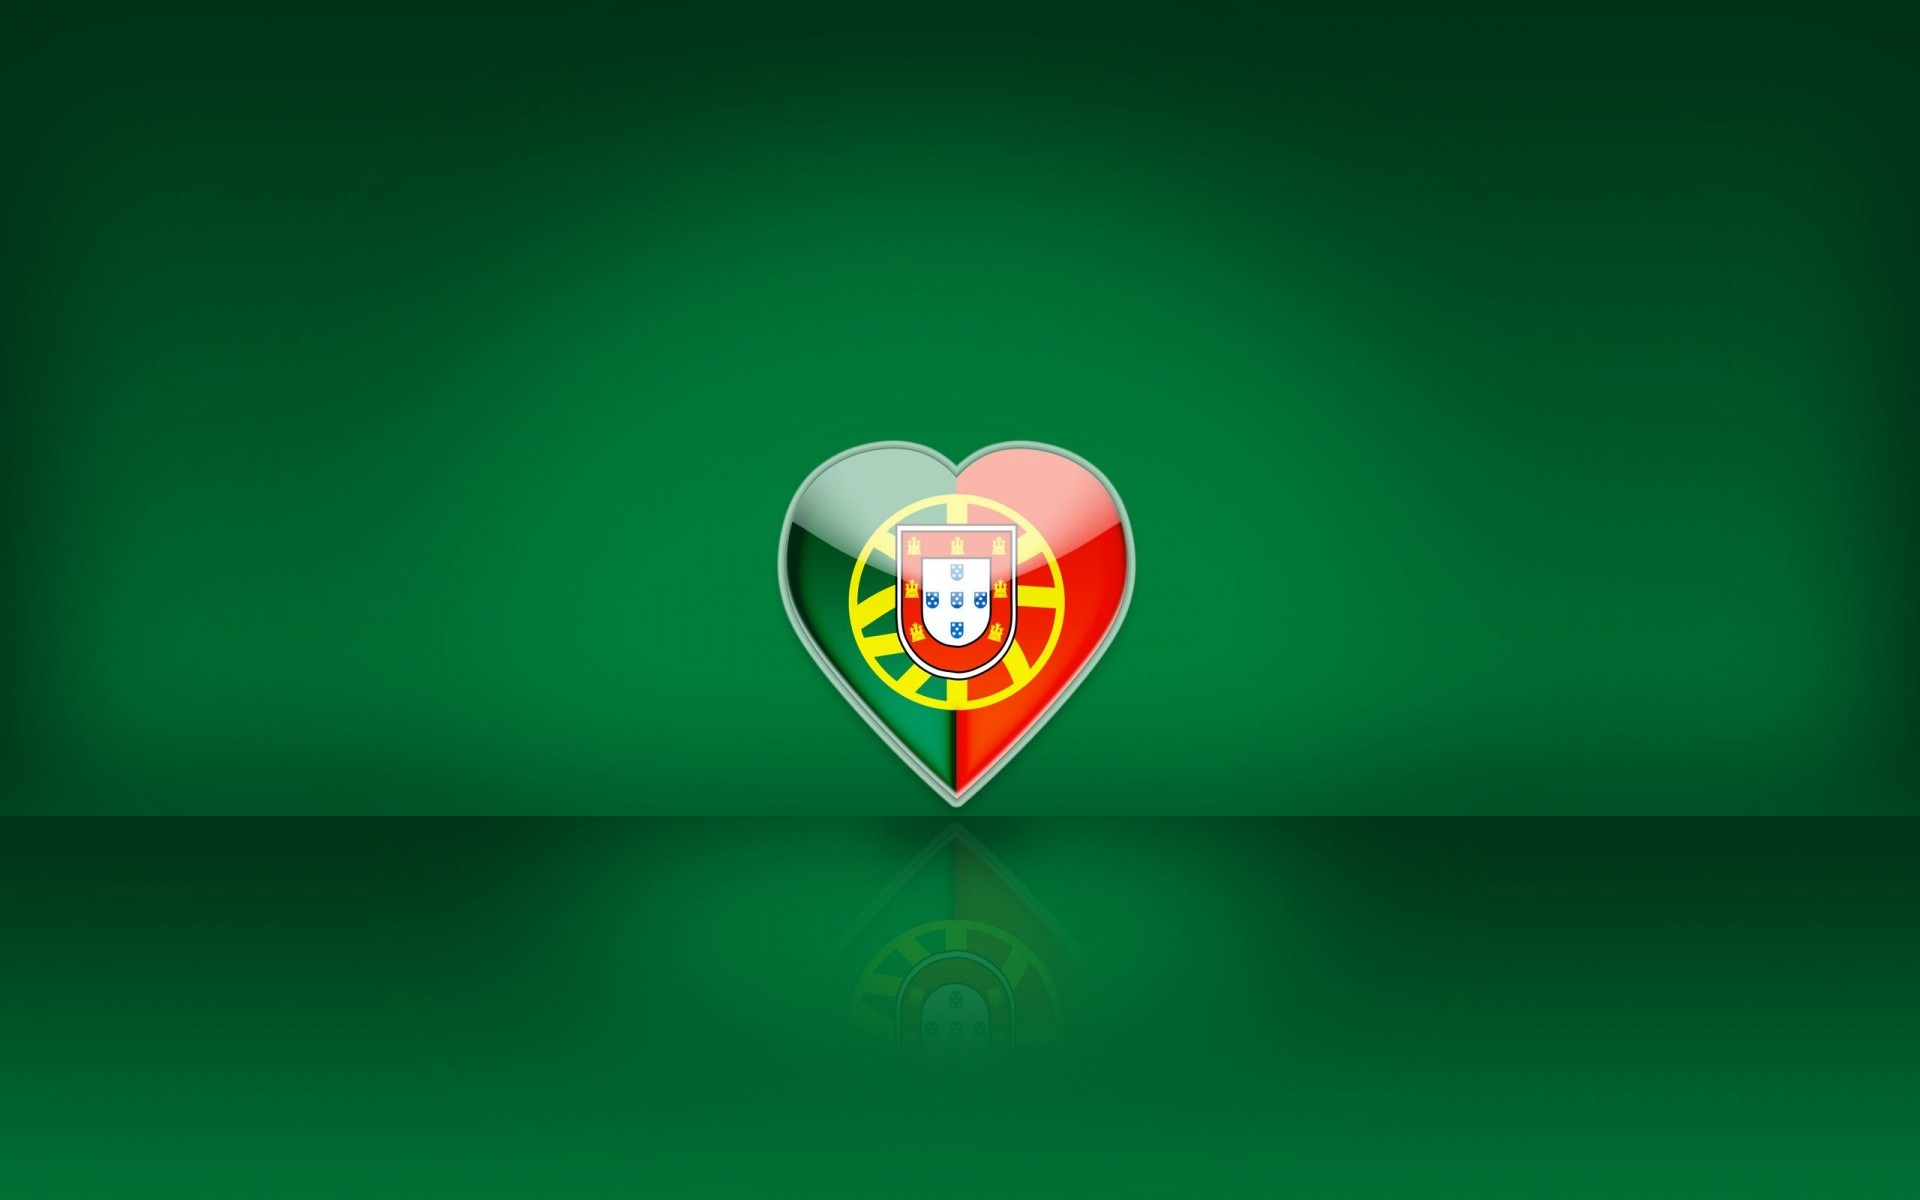 1920x1200 Sweet Portugal desktop wallpapers and stock photos